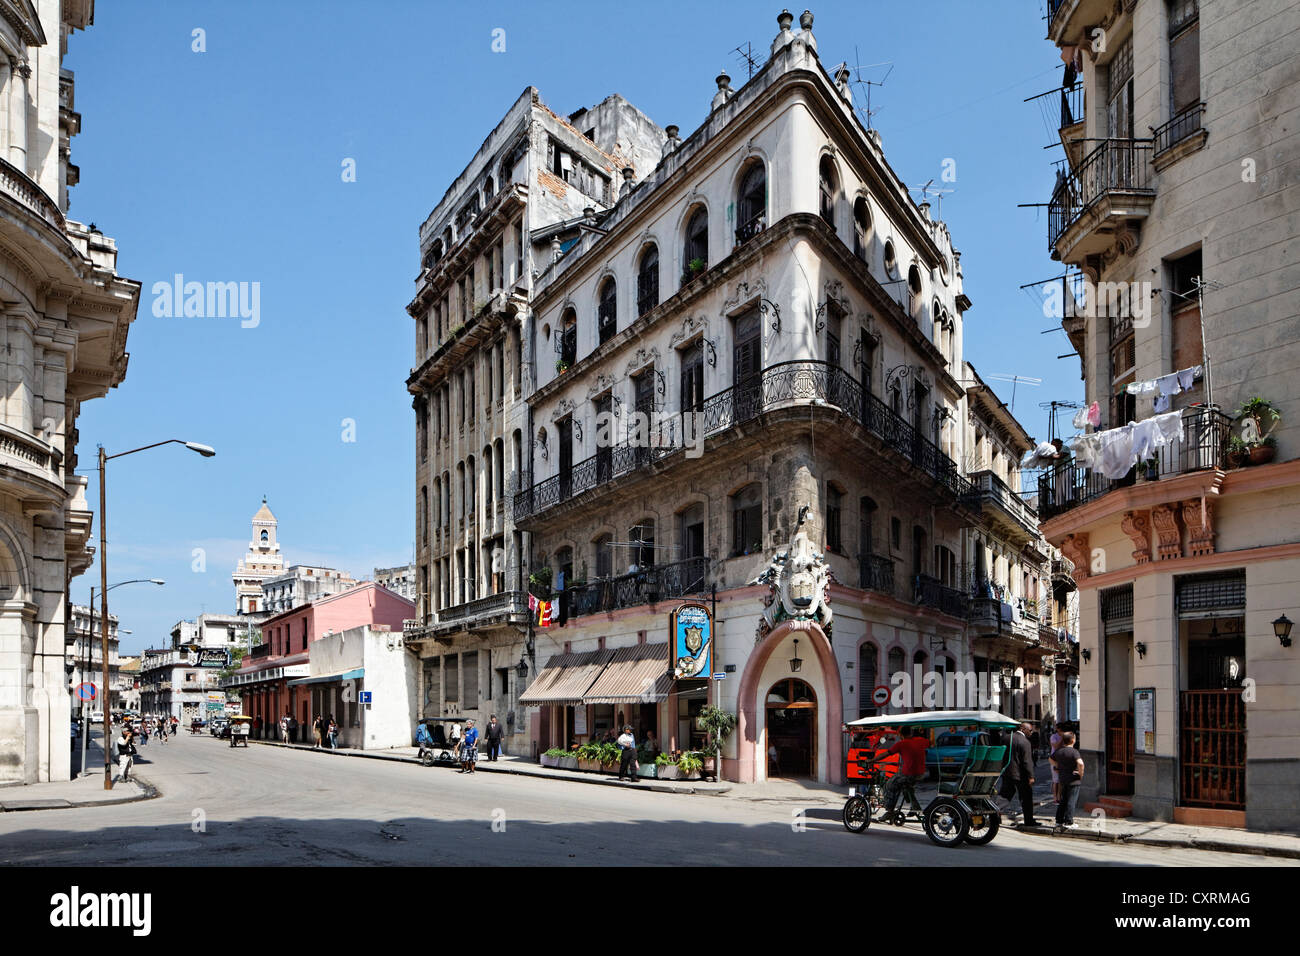 Typical street with neo-classical building dating from feudalism times, Castillo de Farnes Restaurant, Obrapia - Stock Image